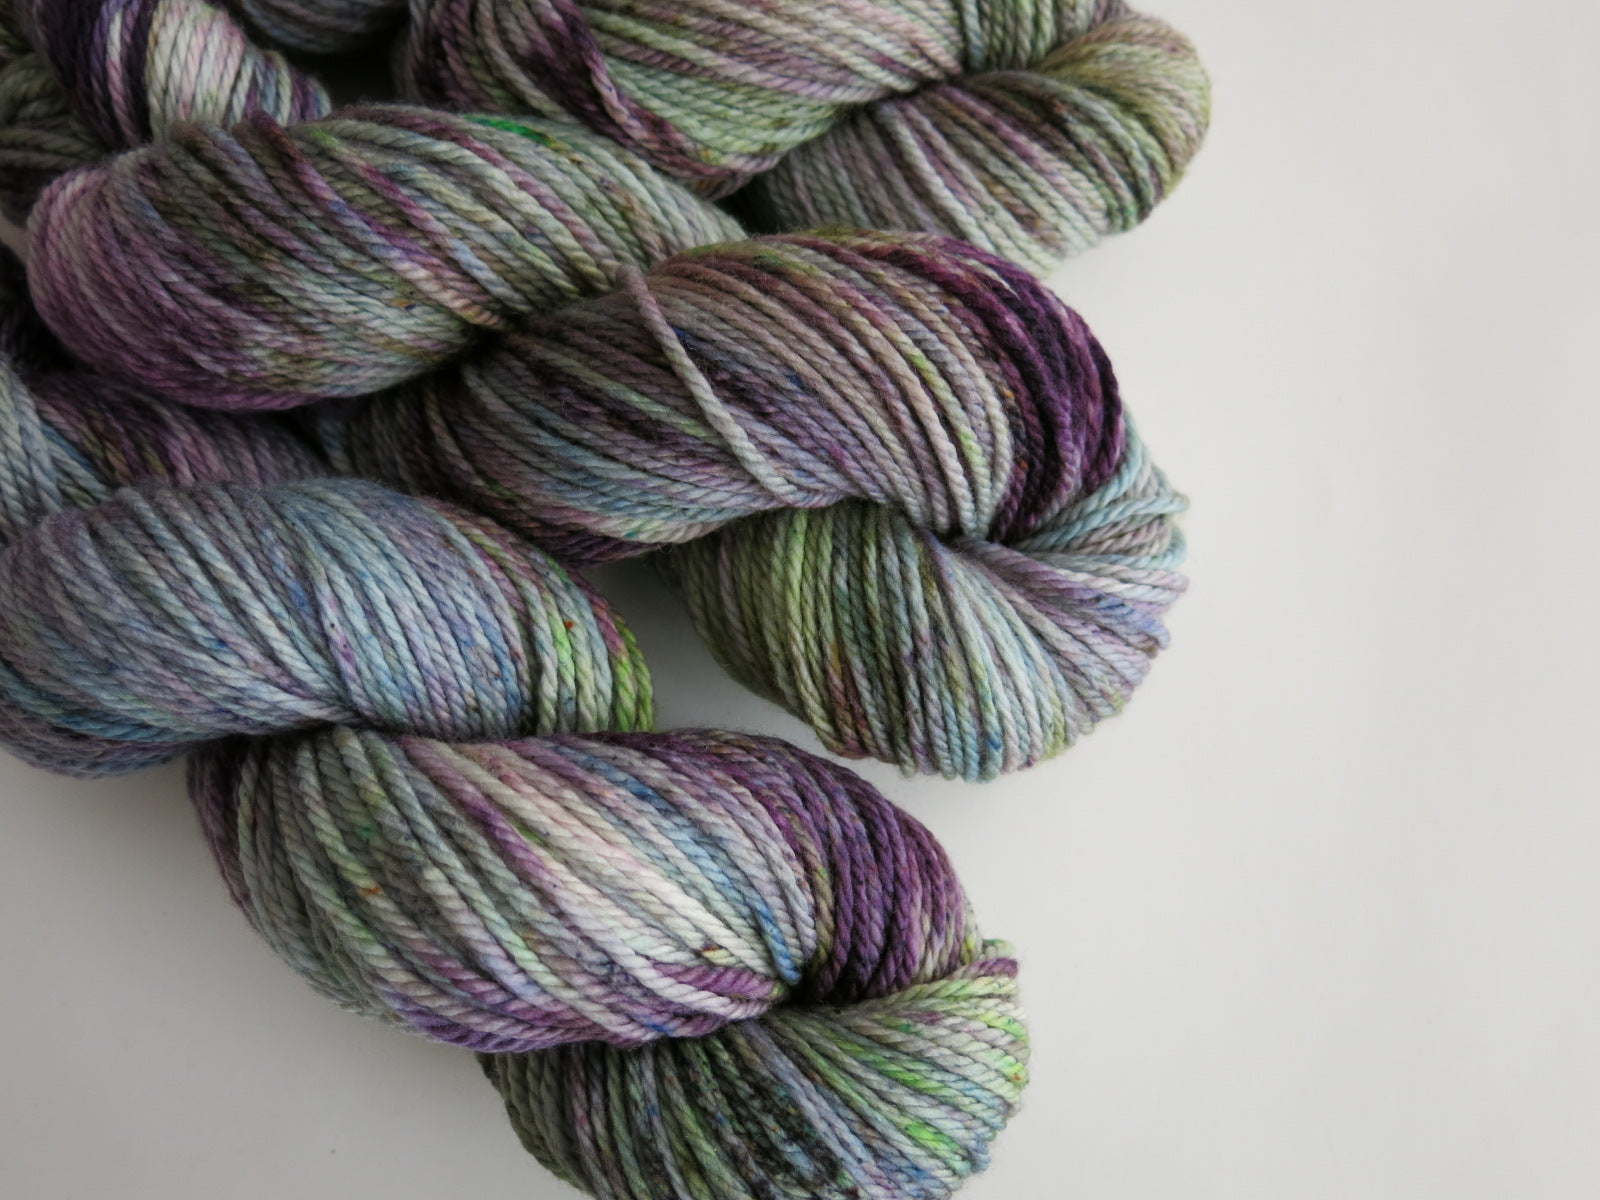 green and purple merino wool skeins for knitting, weaving and crochet